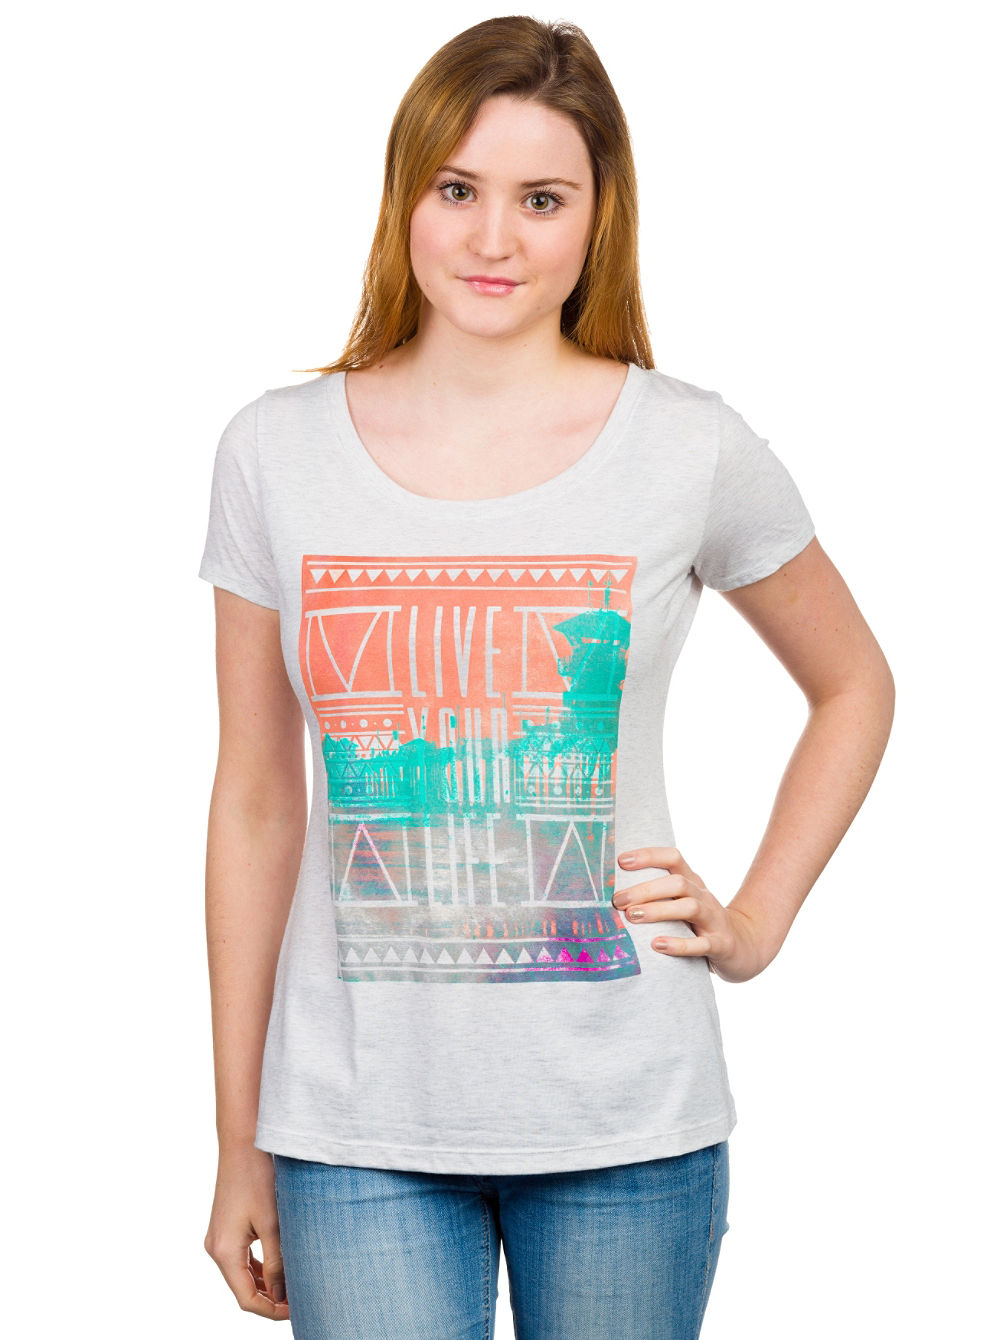 live-your-life-t-shirt